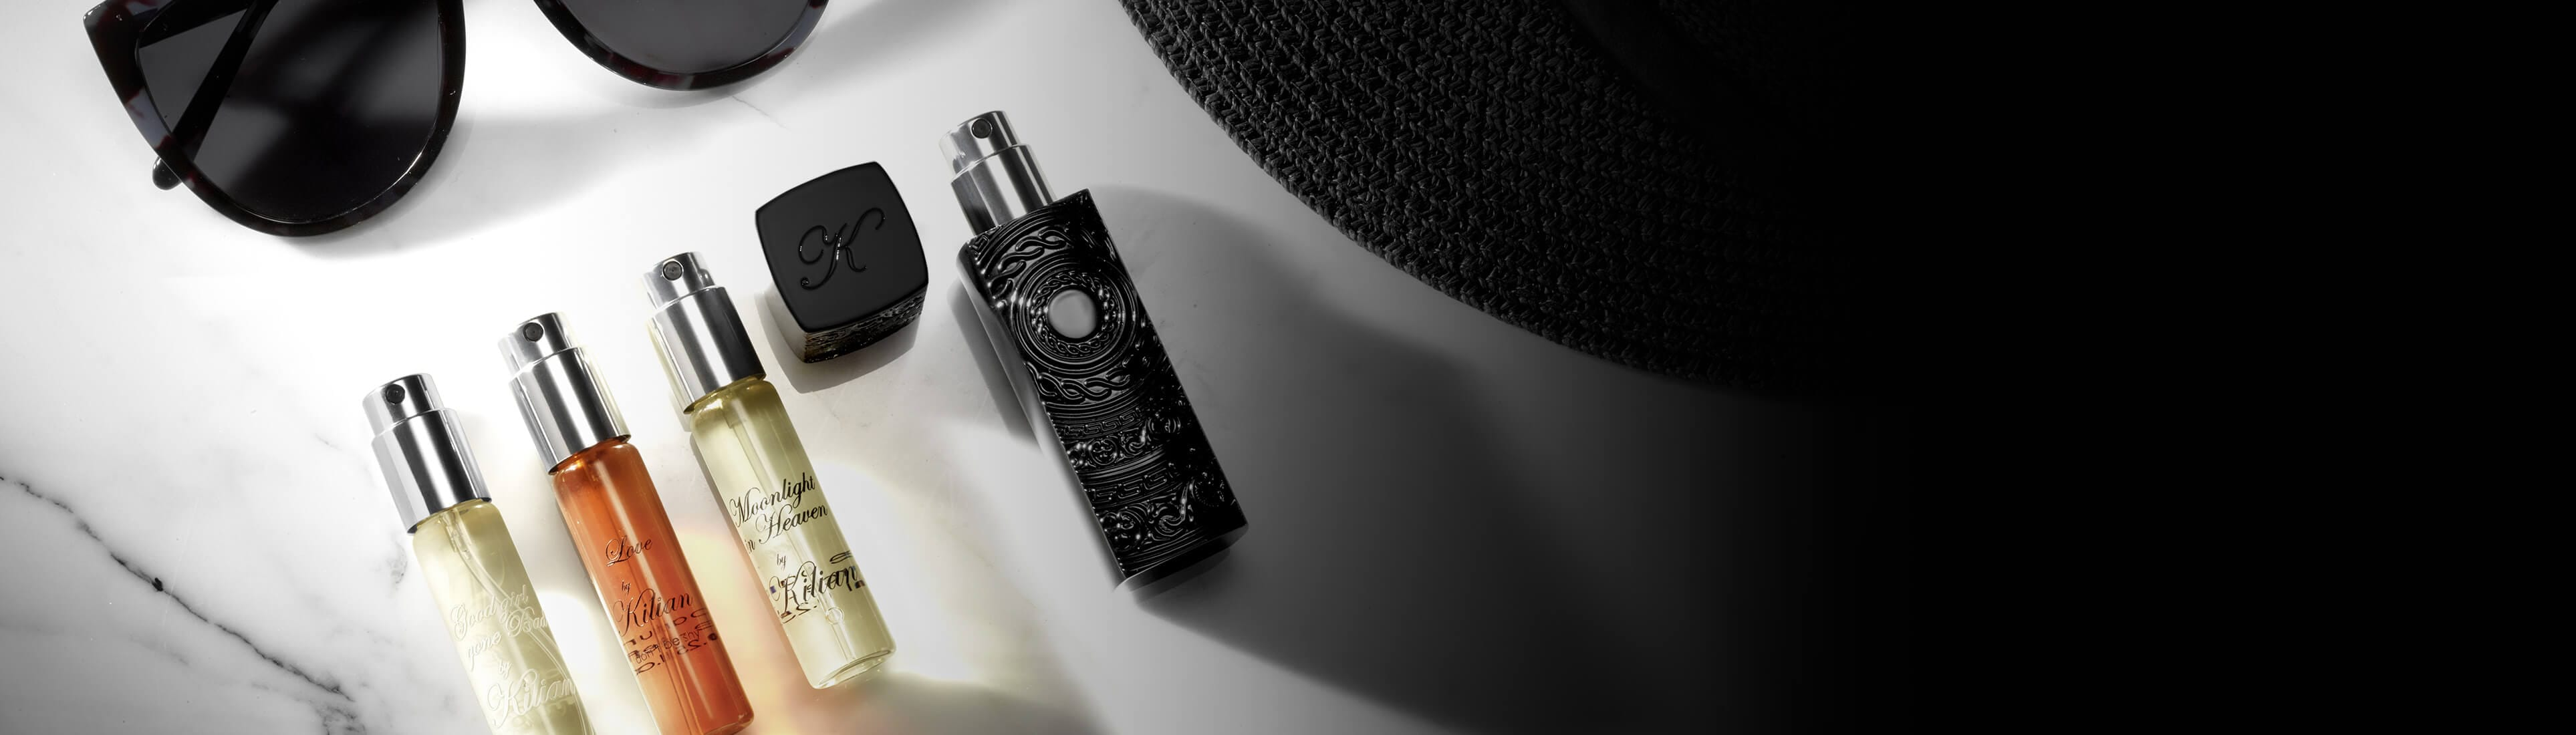 04af10740 KILIAN Perfume as an Art | Discover luxury perfumes from the ...